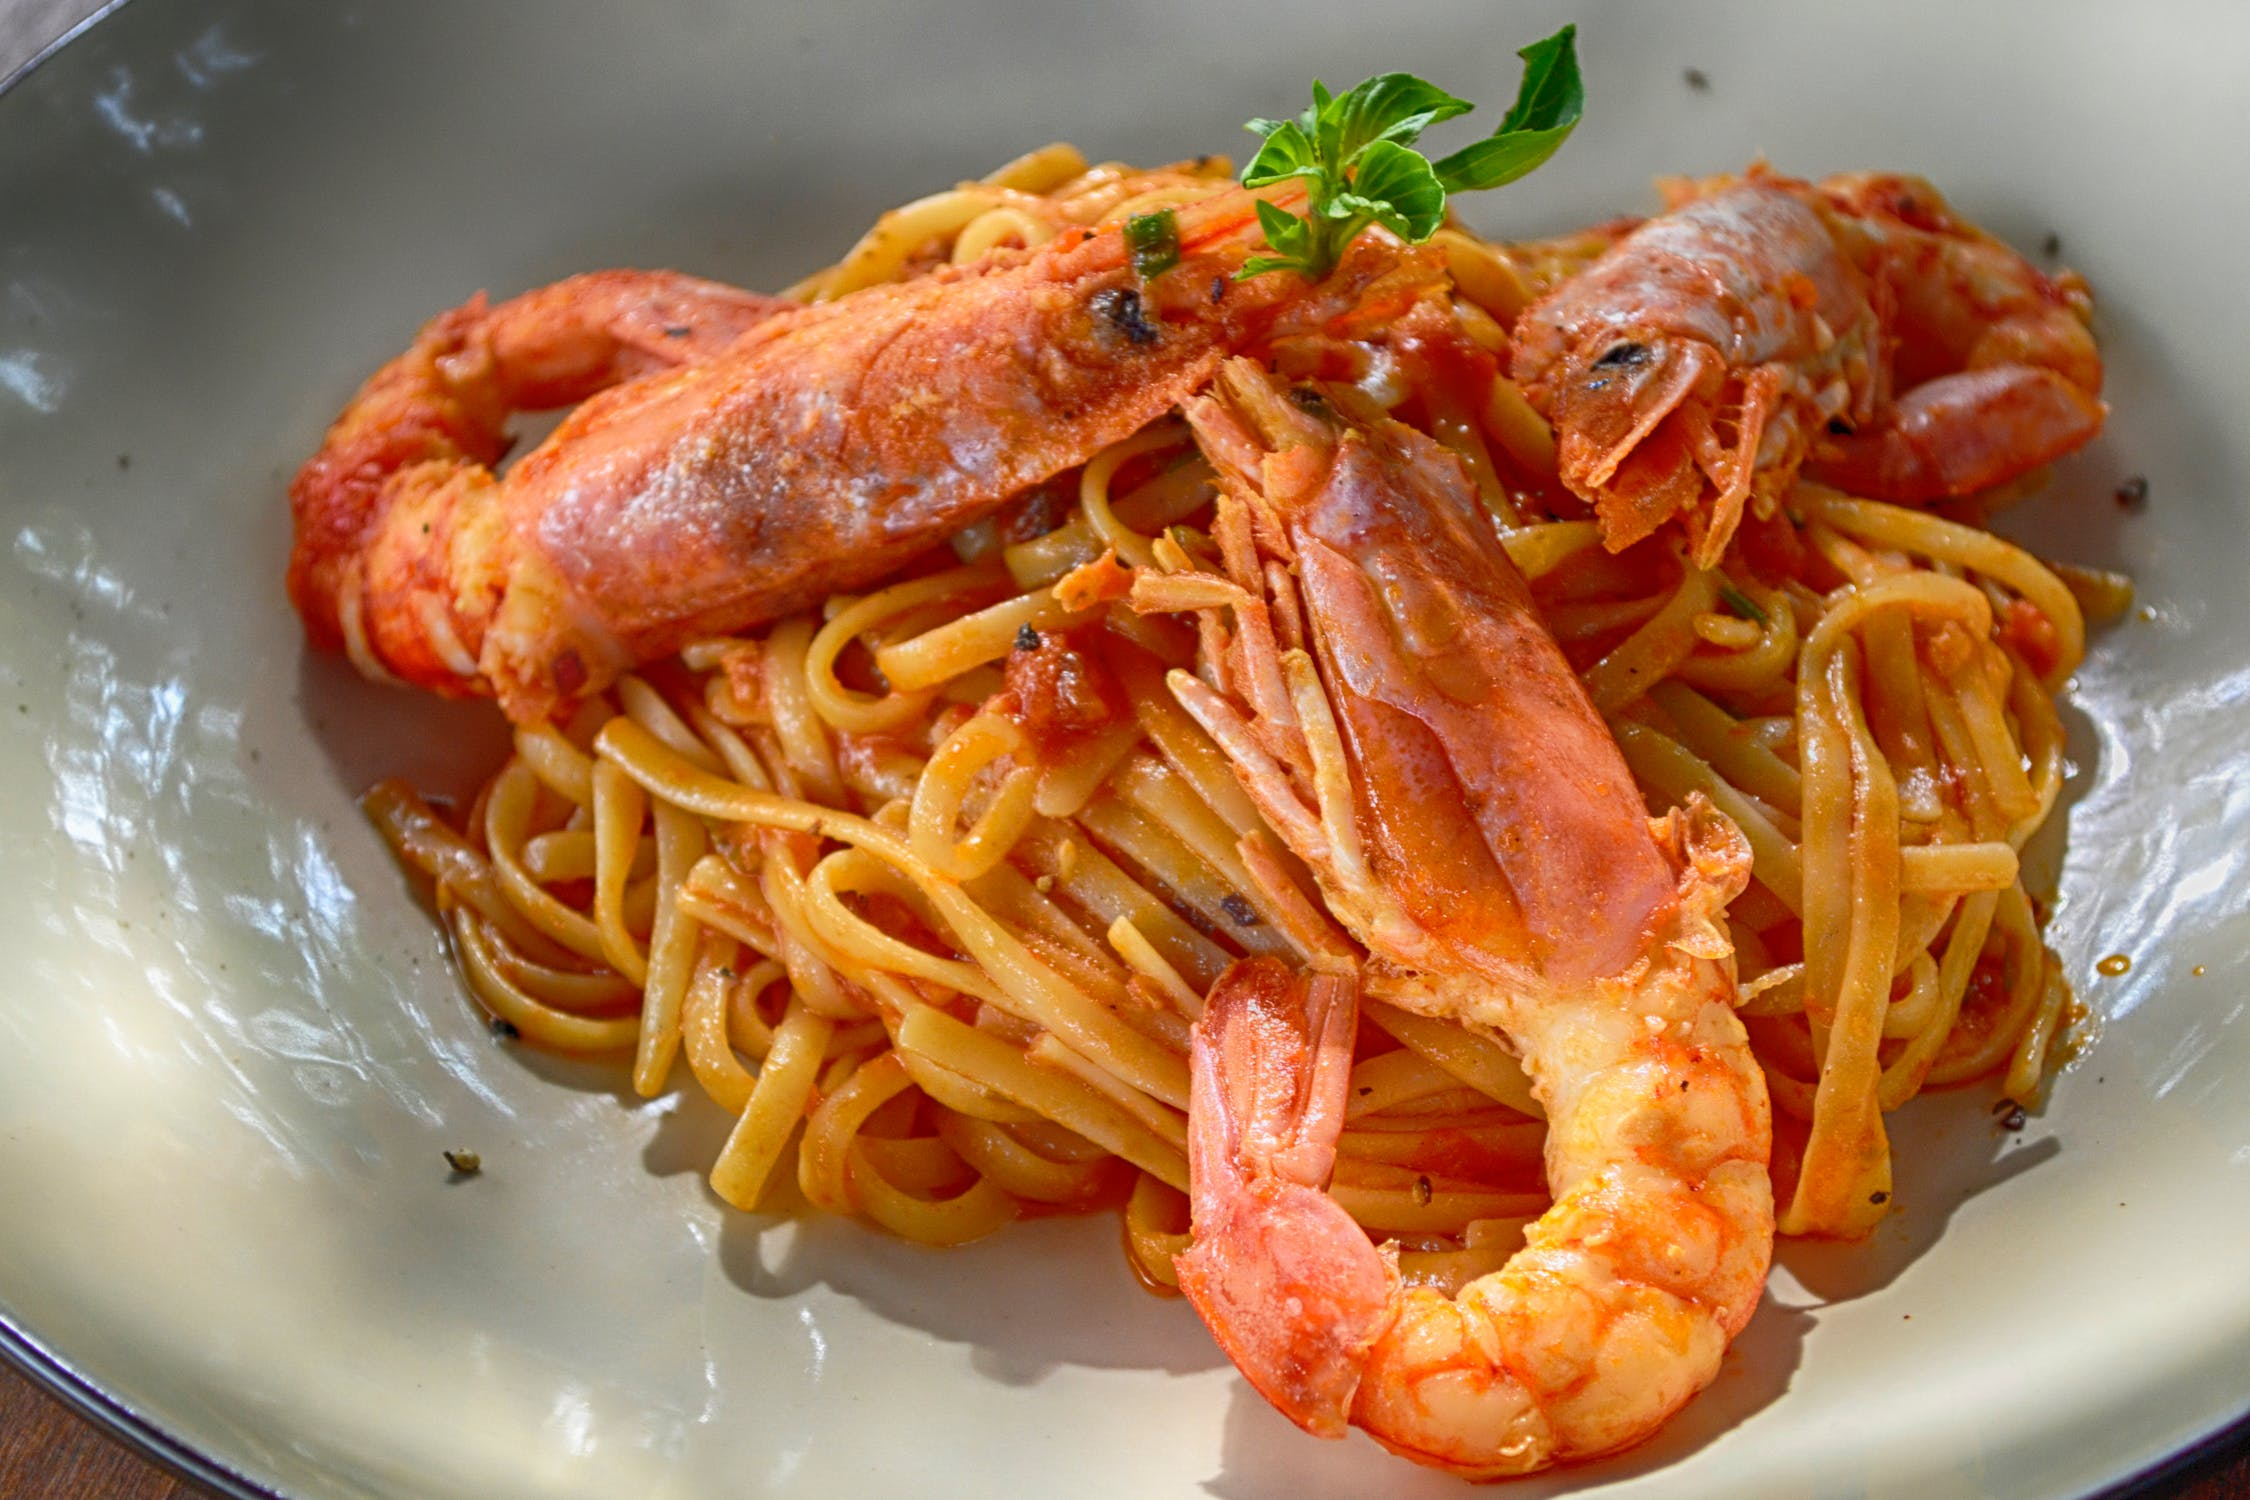 Scampi meal